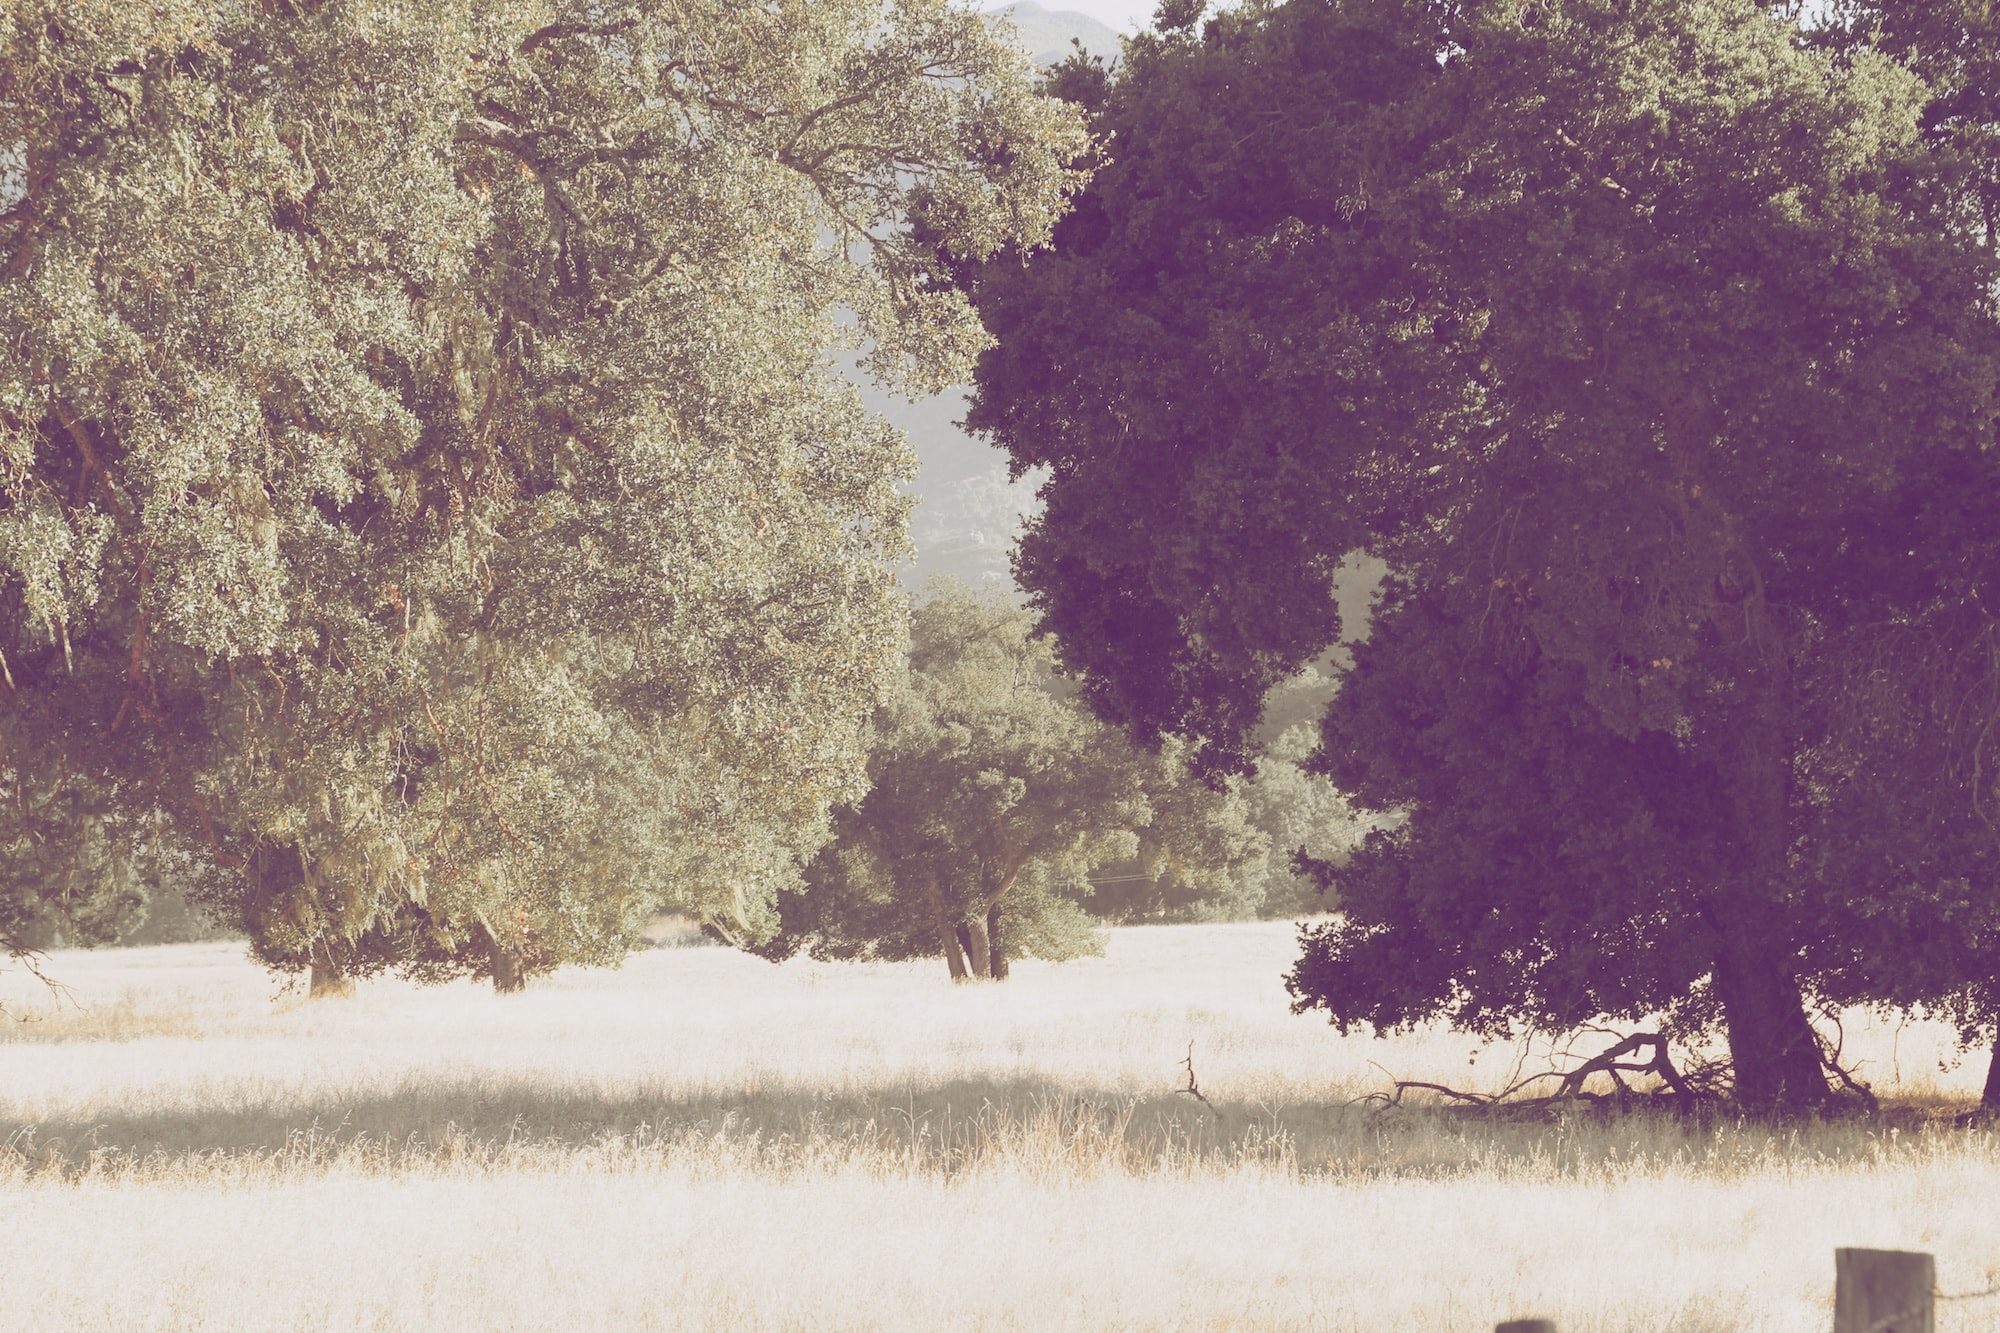 A pale shot of a group of leafy trees in a field